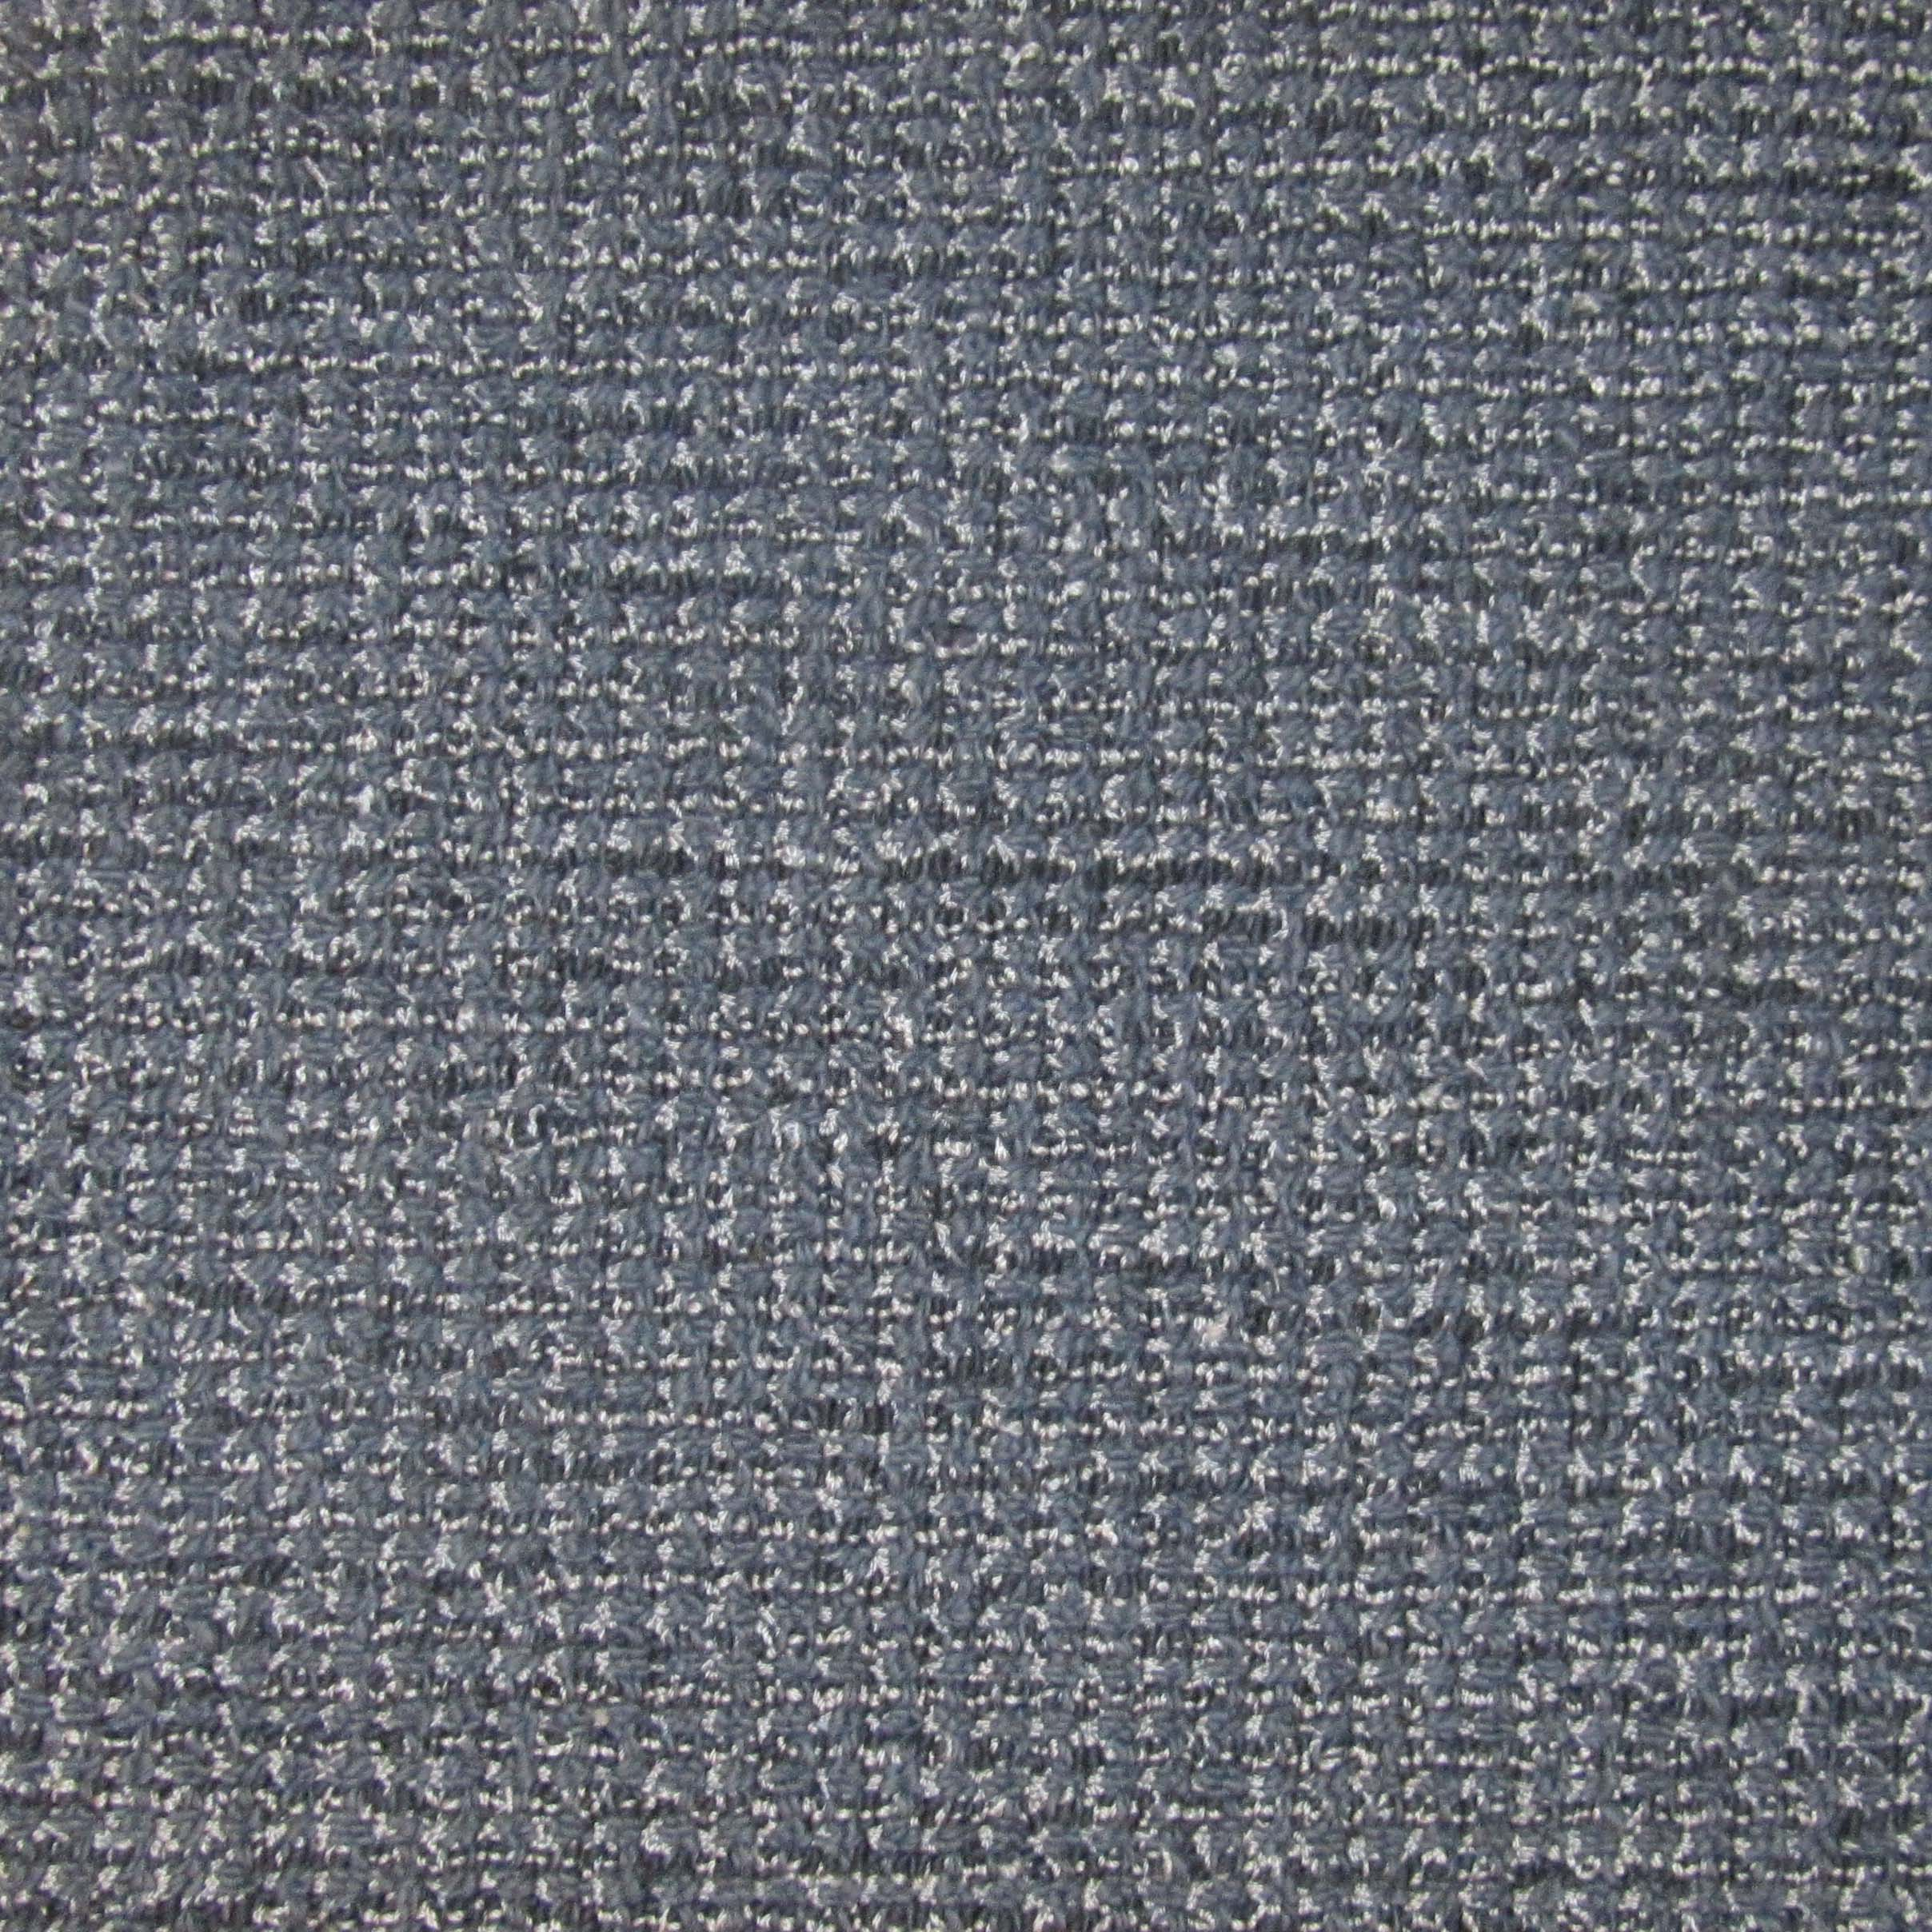 86. CROSS STITCH I DENIM I 7-14-A